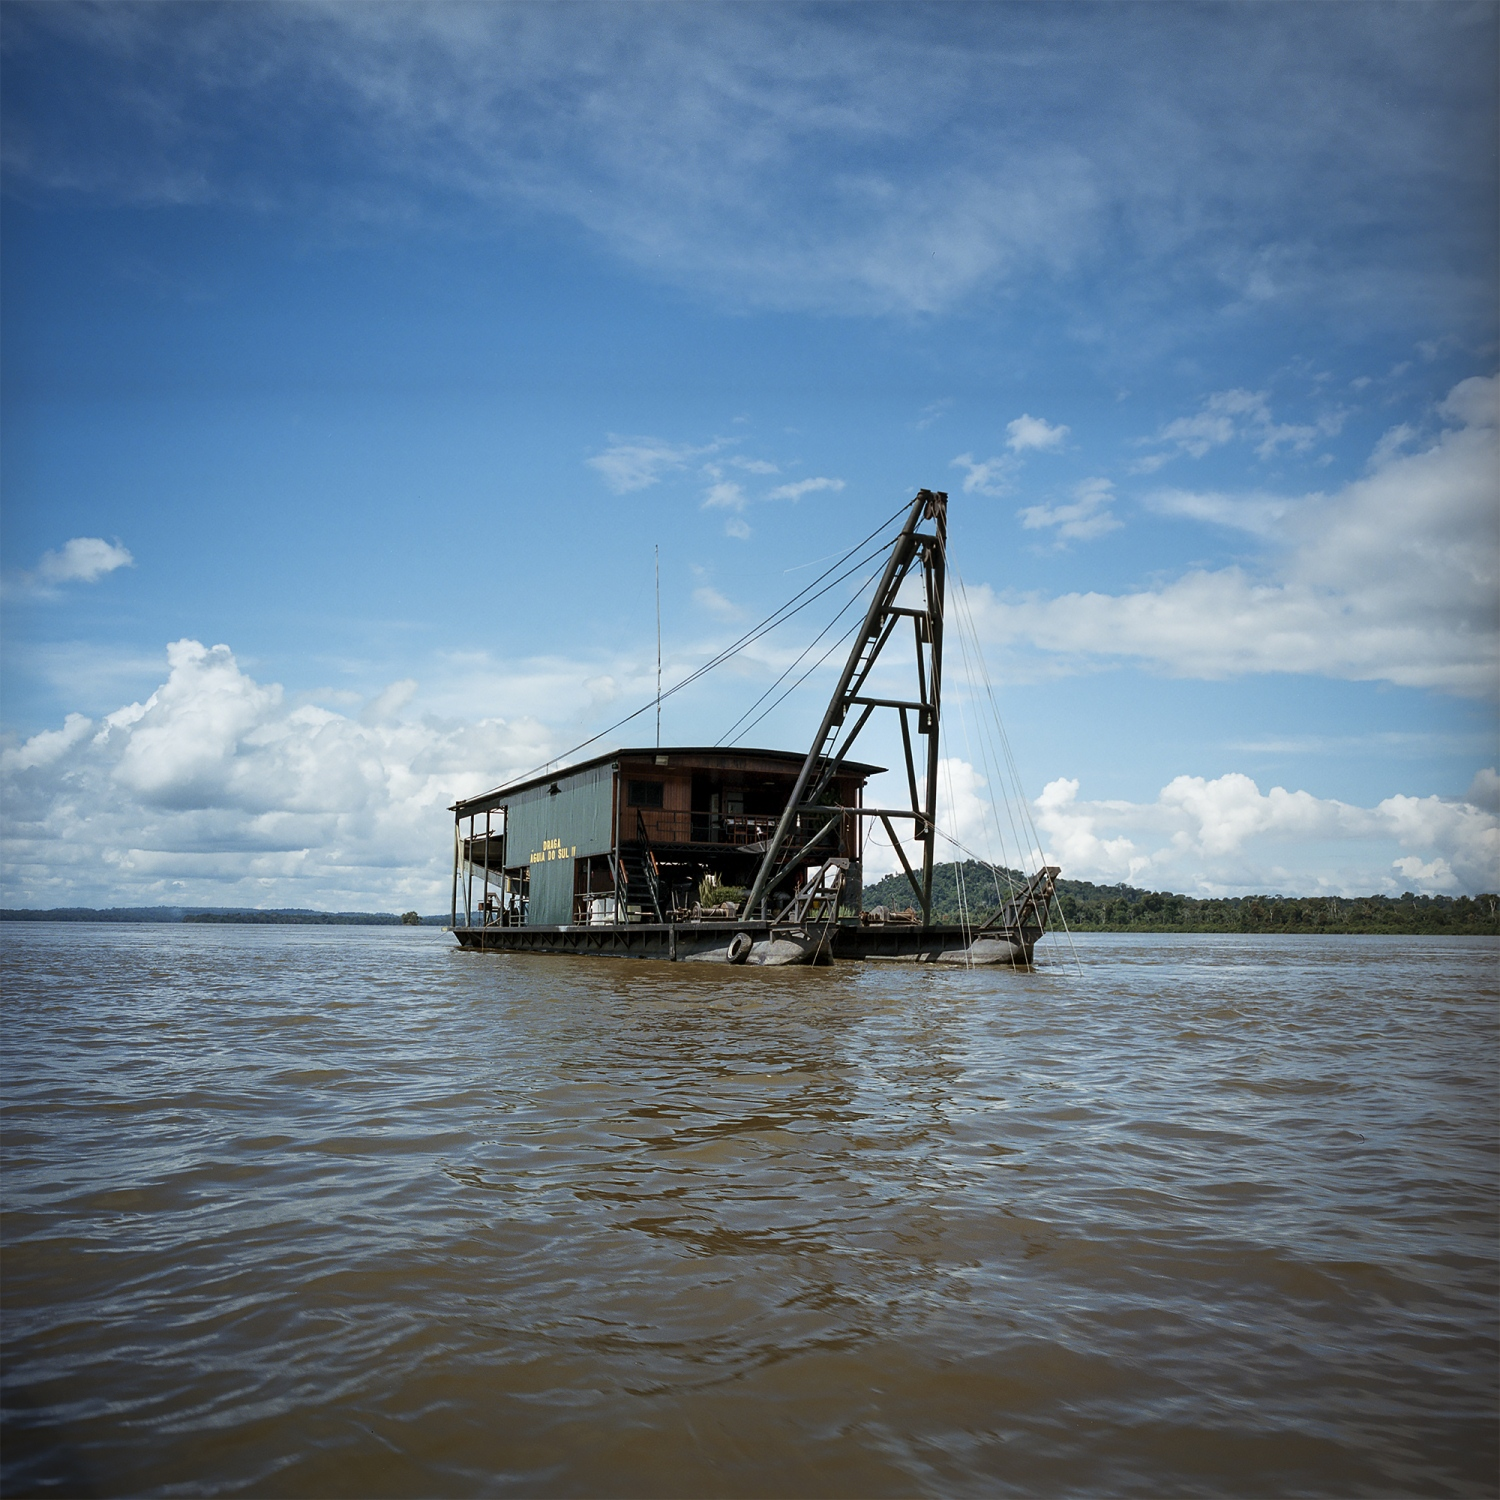 2016.  Gold dredging boats such as this one are a common sight on the Tapajos River in Para State, Brazil. The river was once very clear, but the constant dredging has made it much muddier in recent years.  /Aaron Vincent Elkaim